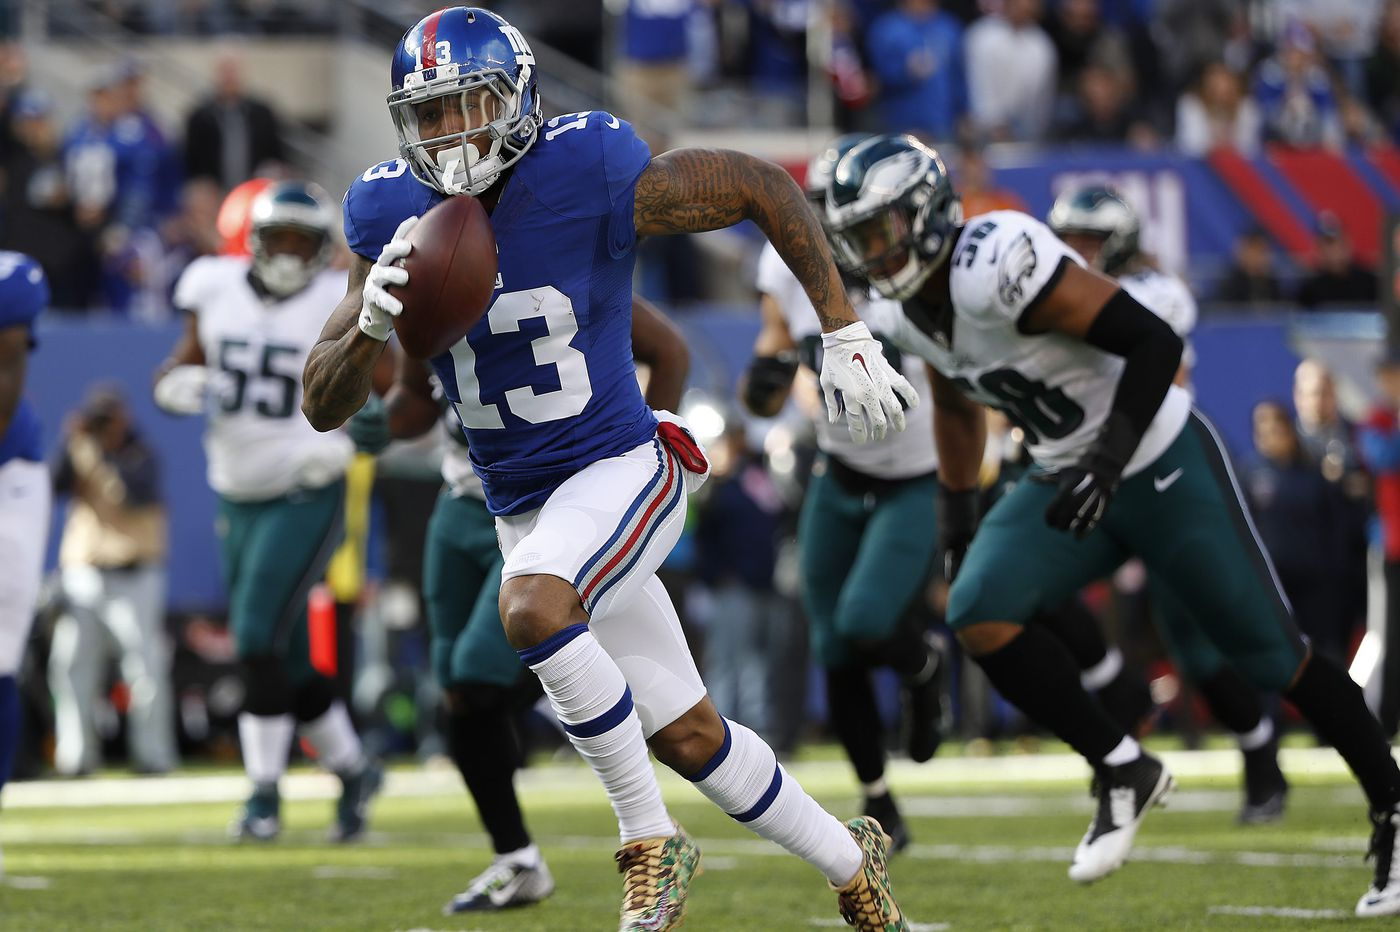 Sports betting: Thinking Eagles over Giants? Think again